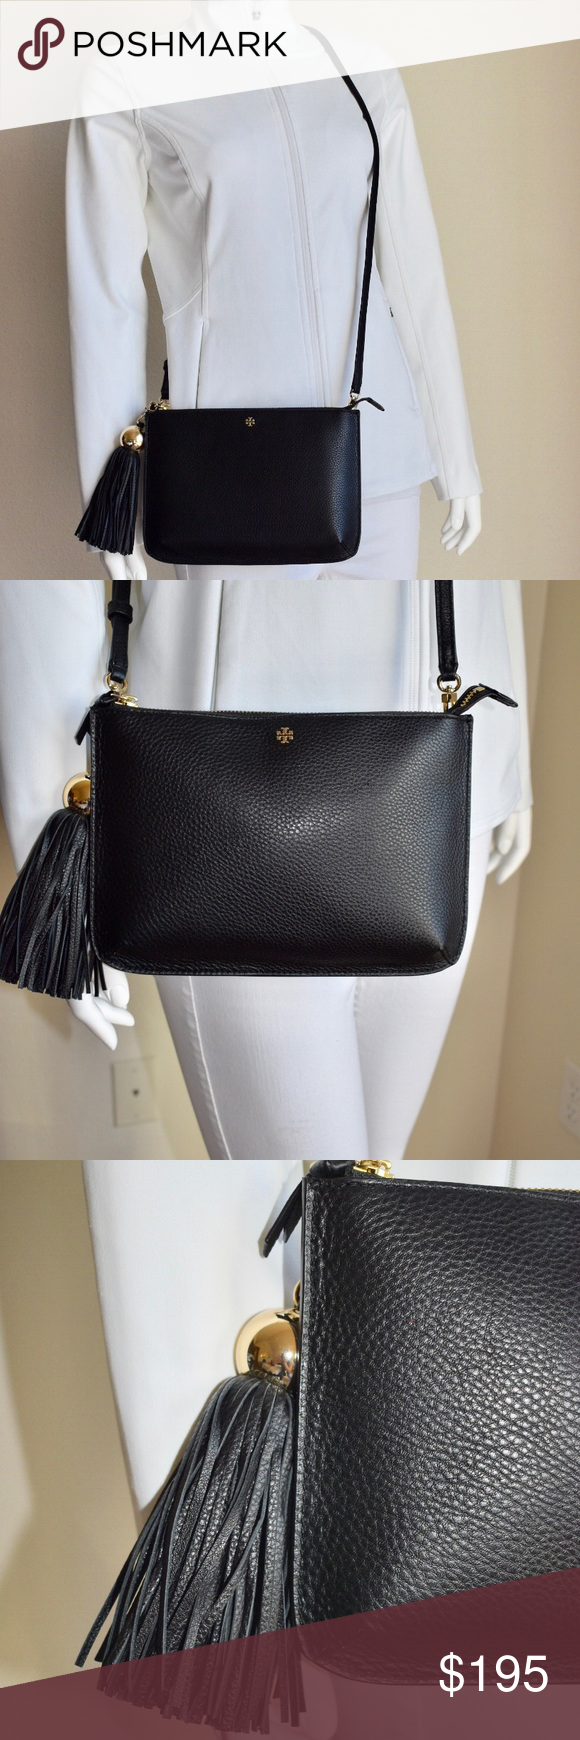 TORY BURCH TASSEL CROSSBODY BAG 💎Brand New with tag and Authentic 👍  💎Same day 9df901f5d8